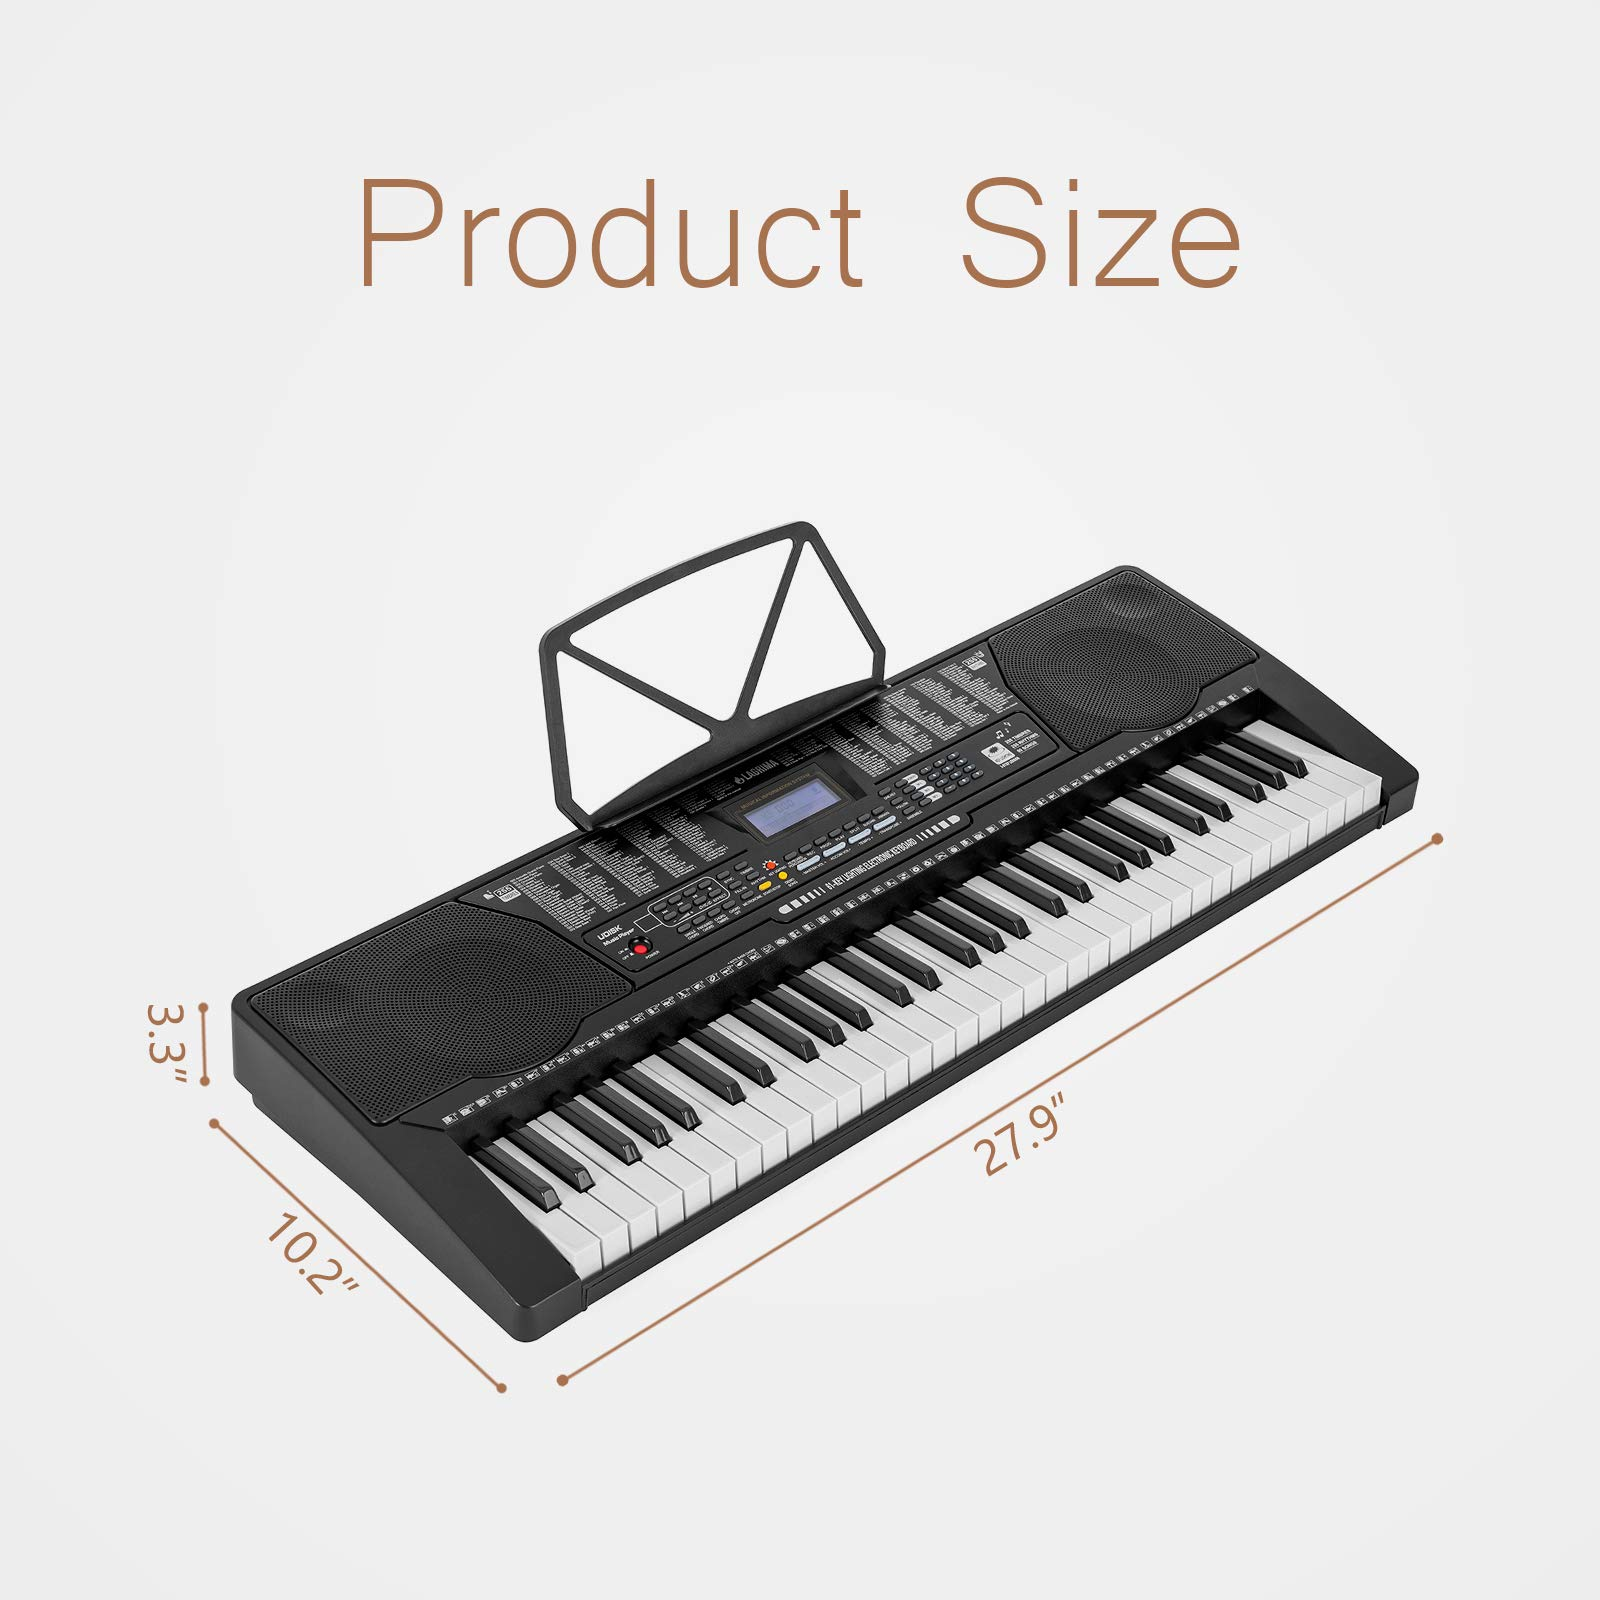 LAGRIMA 61 Key Electric Keyboard Piano w/Light Up Keys for Beginner, Lighted Portable Keyboard w/Music Player Function, Micphone, Power Supply, Music Stand, Black by LAGRIMA (Image #7)